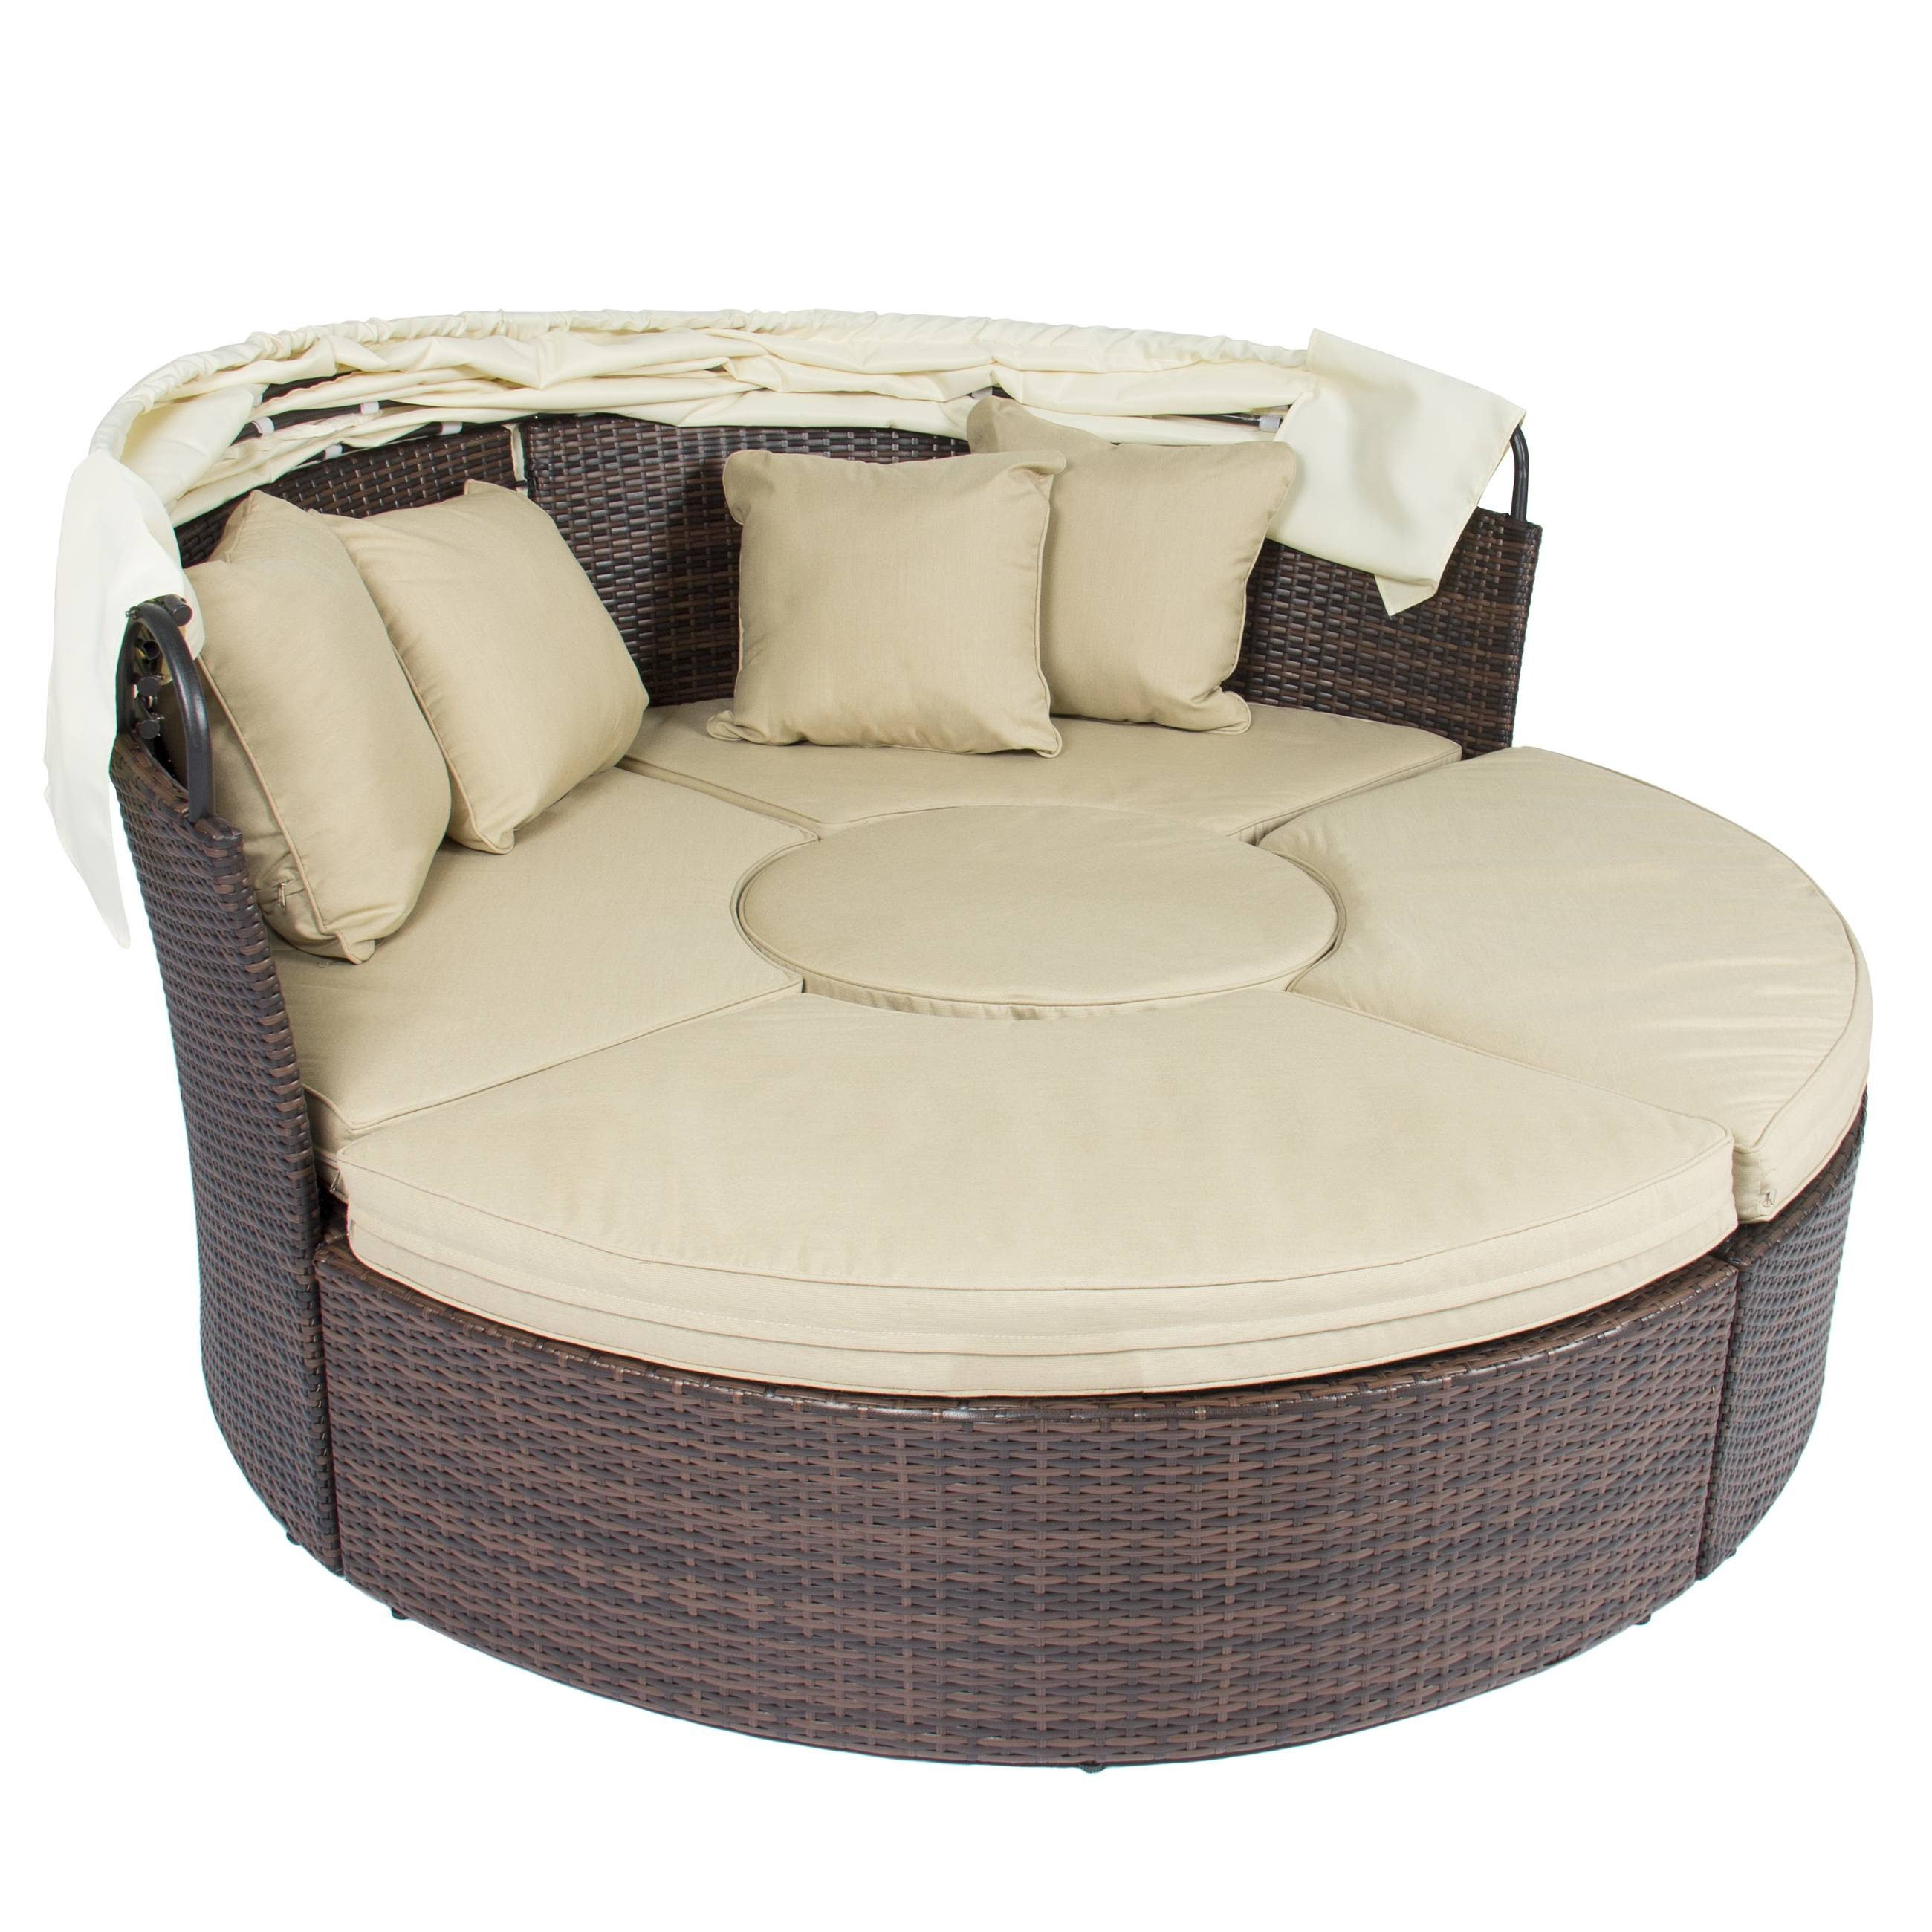 Sofas Center : Large Round Sofa Chair Cheaplarge Cheaptrendy for Round Sofa Chairs (Image 11 of 15)